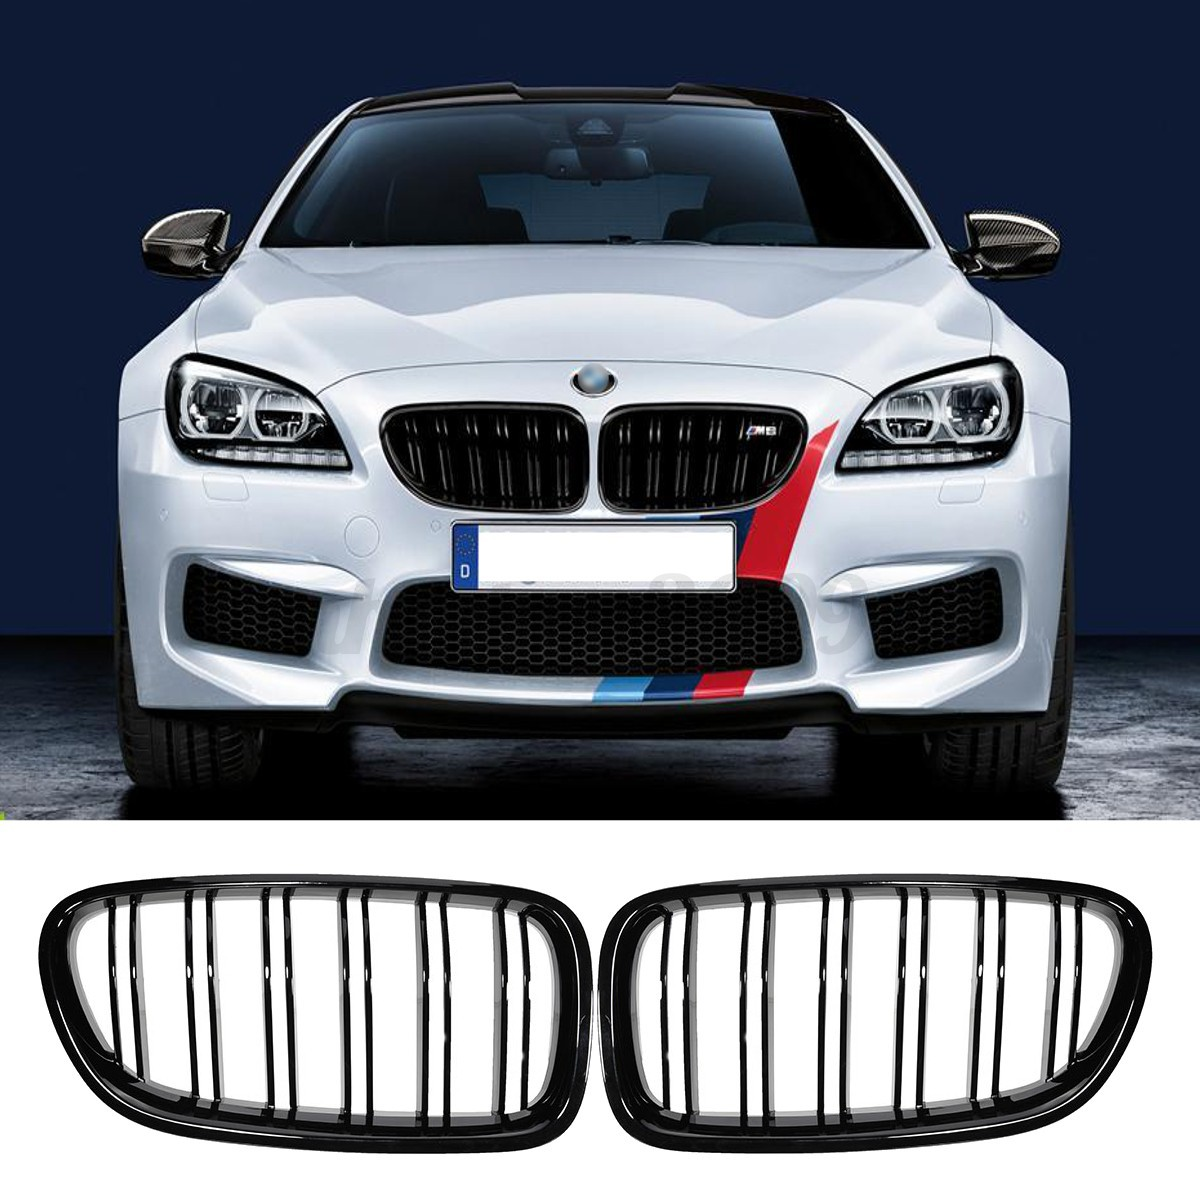 Gloss Black Front Sport Kidney Grill Grille For BMW 10-14 F10 F18 F02 F11 M5